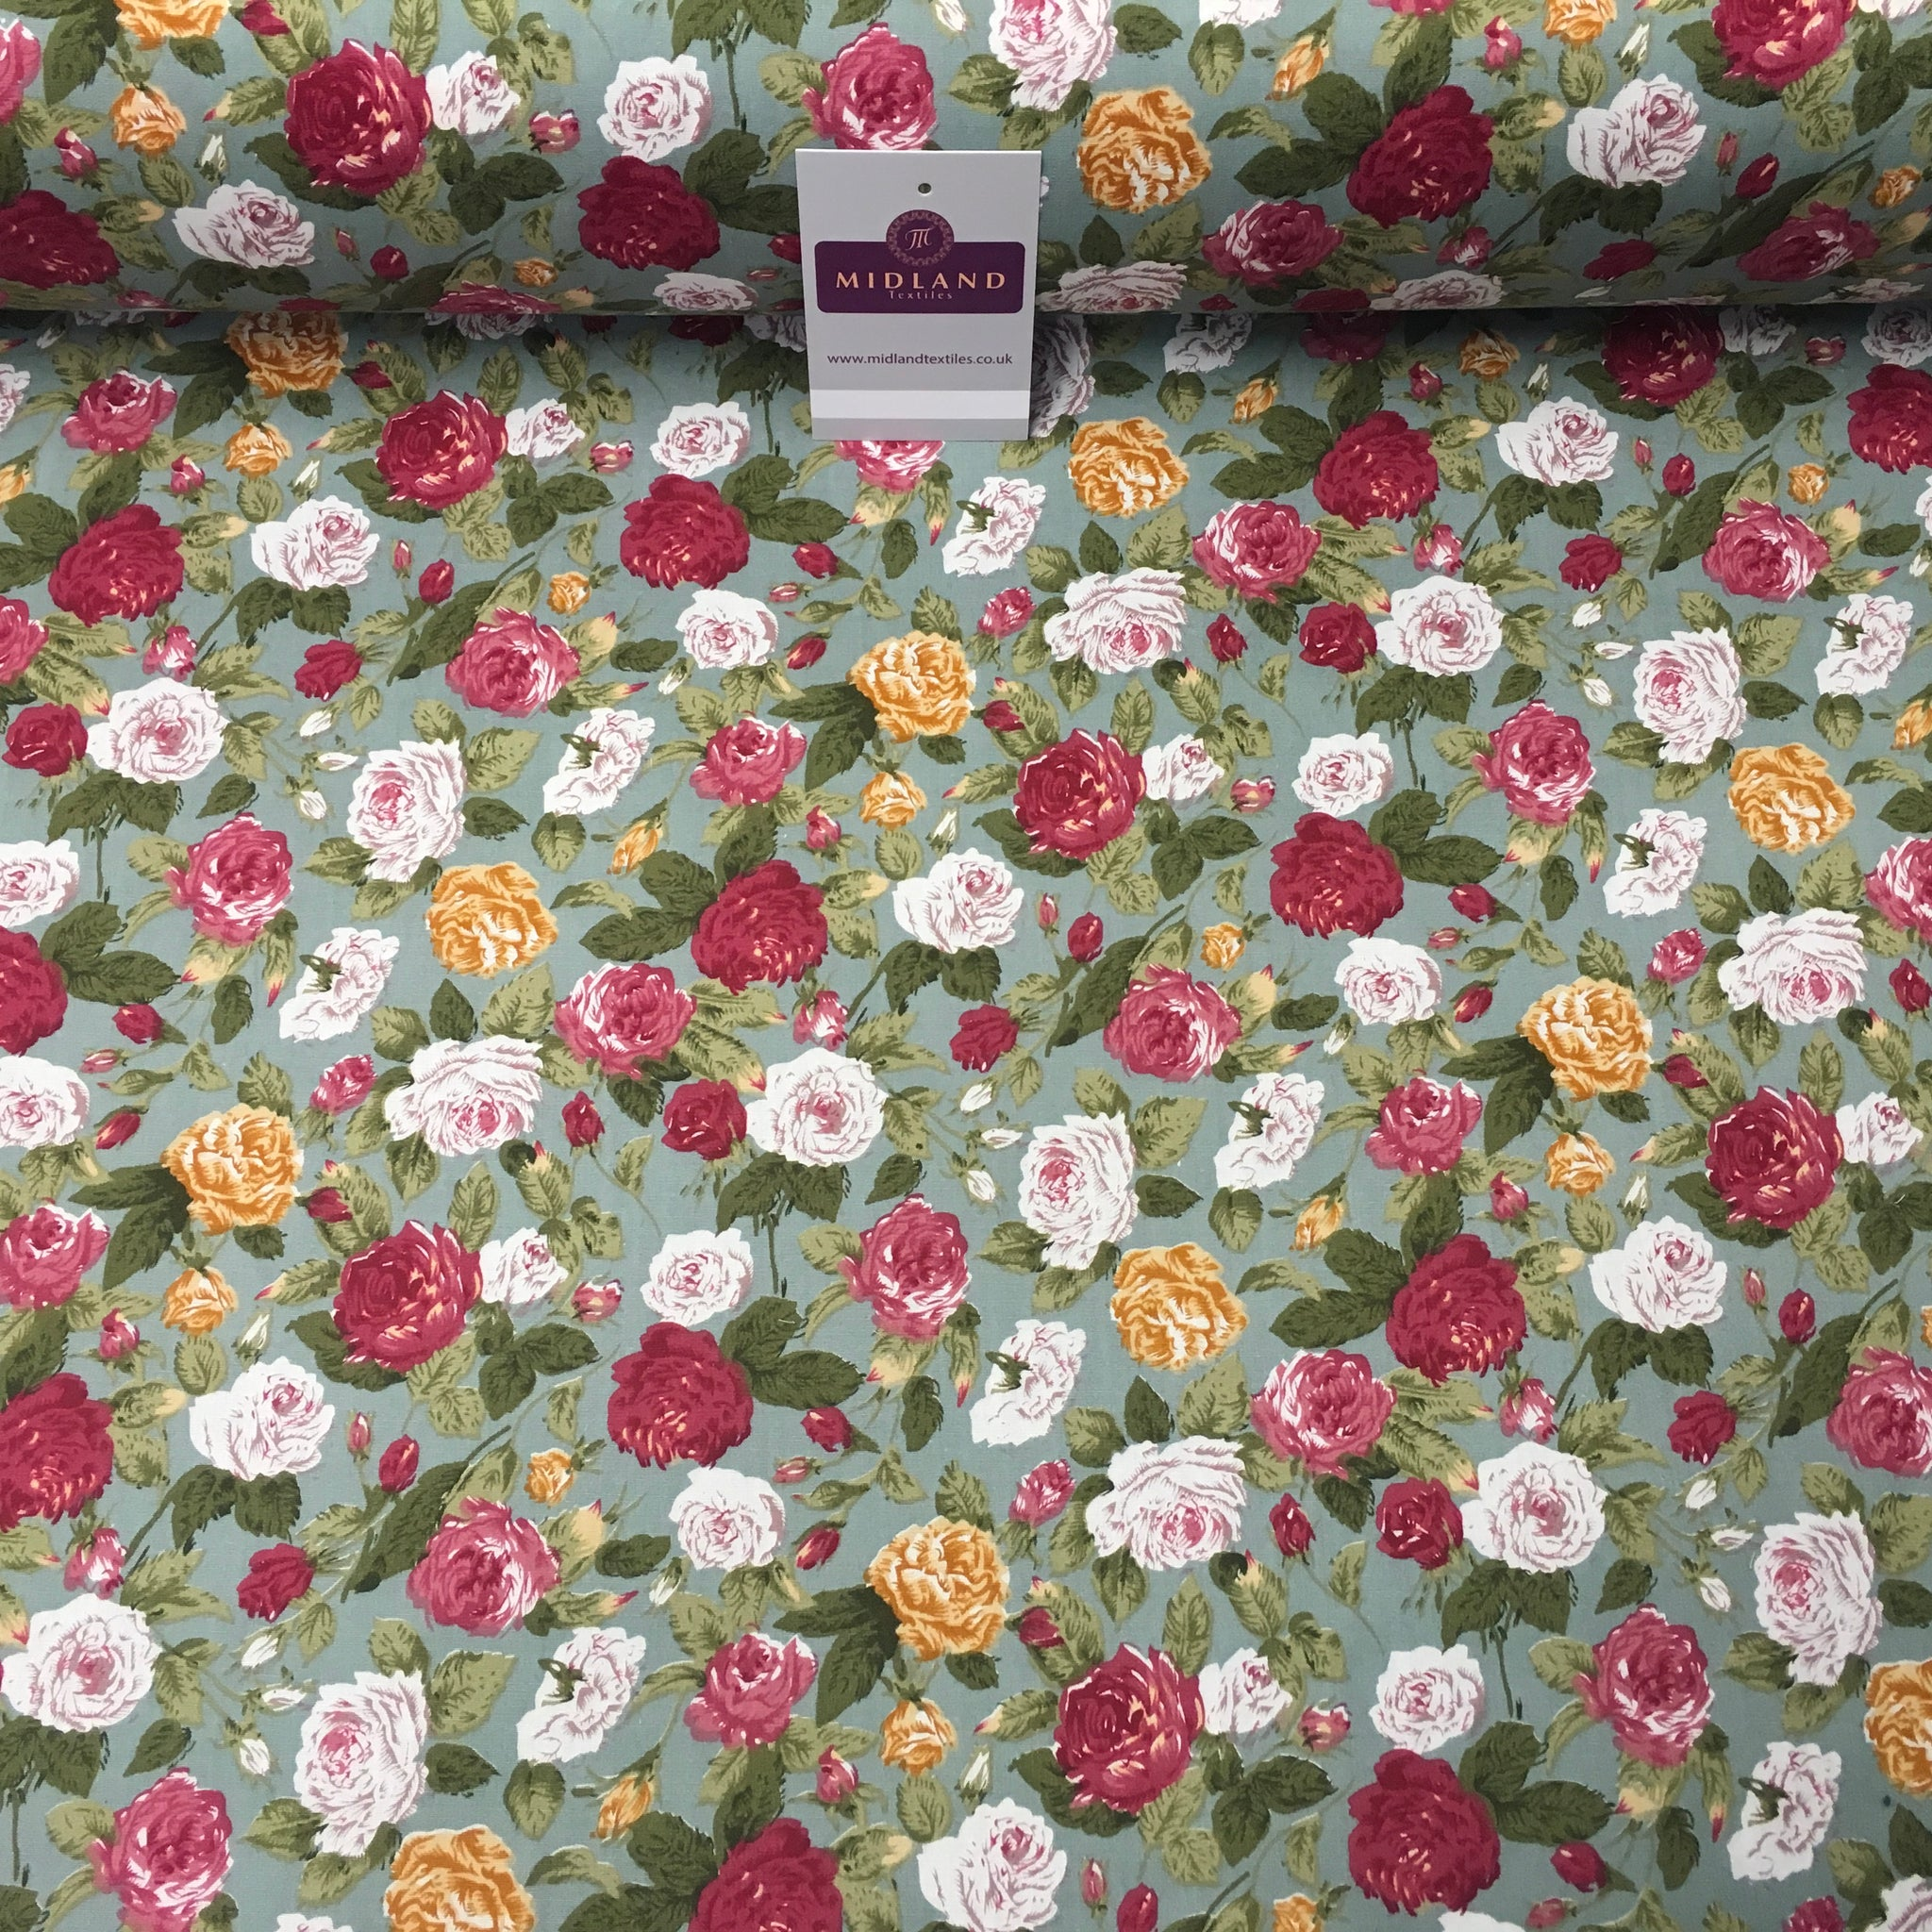 "Floral Vintage Shabby Chic Printed 100% Cotton Fabric 58"" Wide MA911 Mtex"